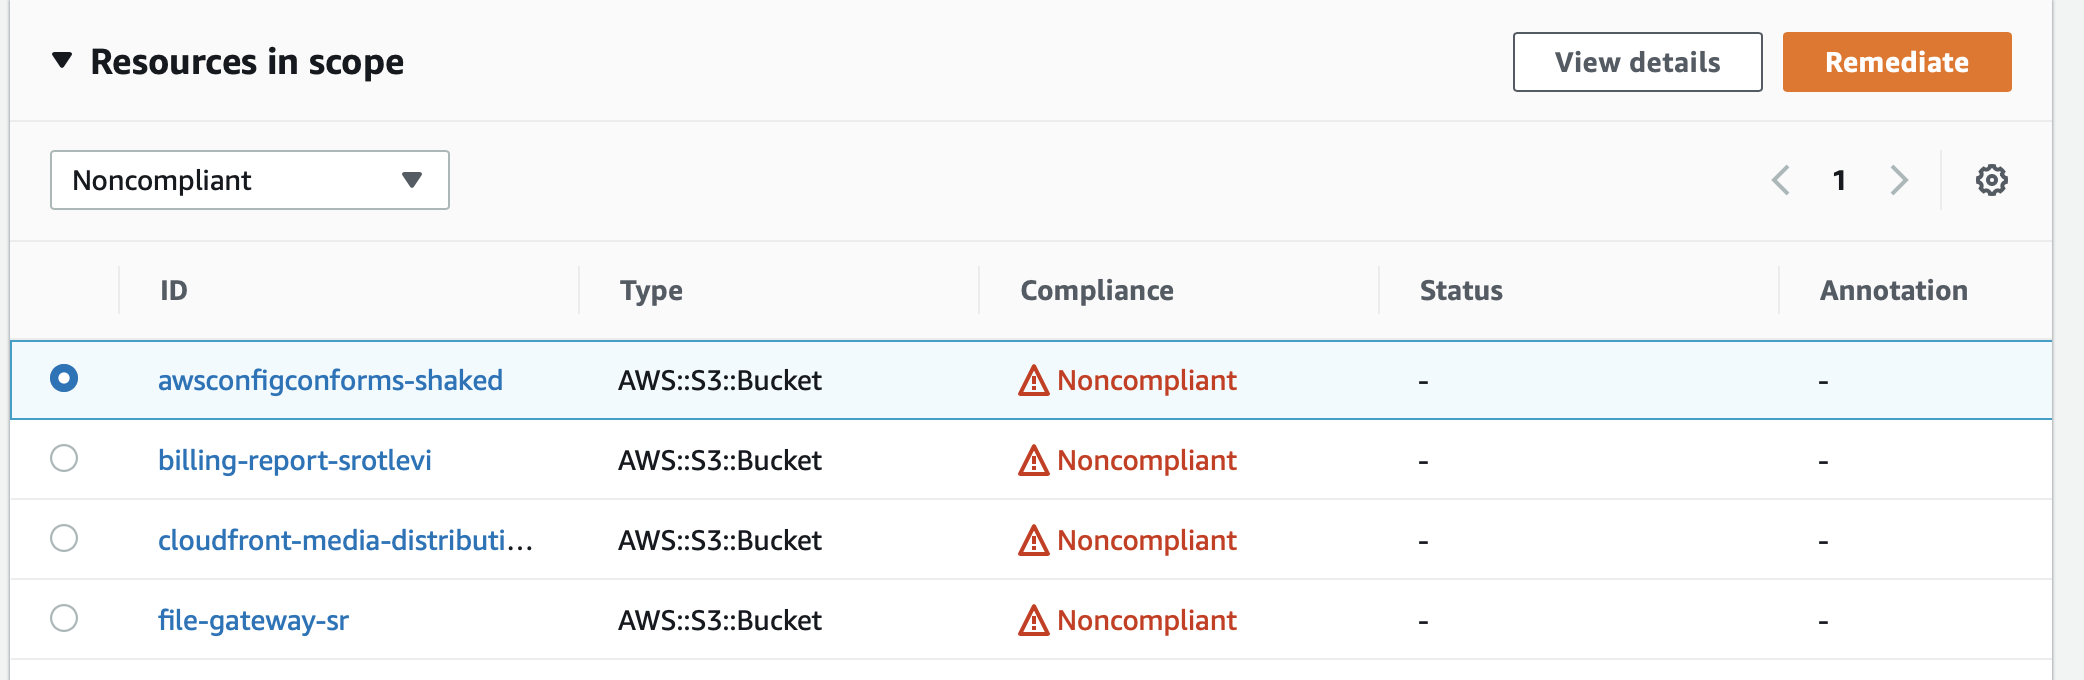 On Resources in scope, S3 buckets are filtered to show noncompliant buckets. The awsconfigconforms-shaked bucket is selected.